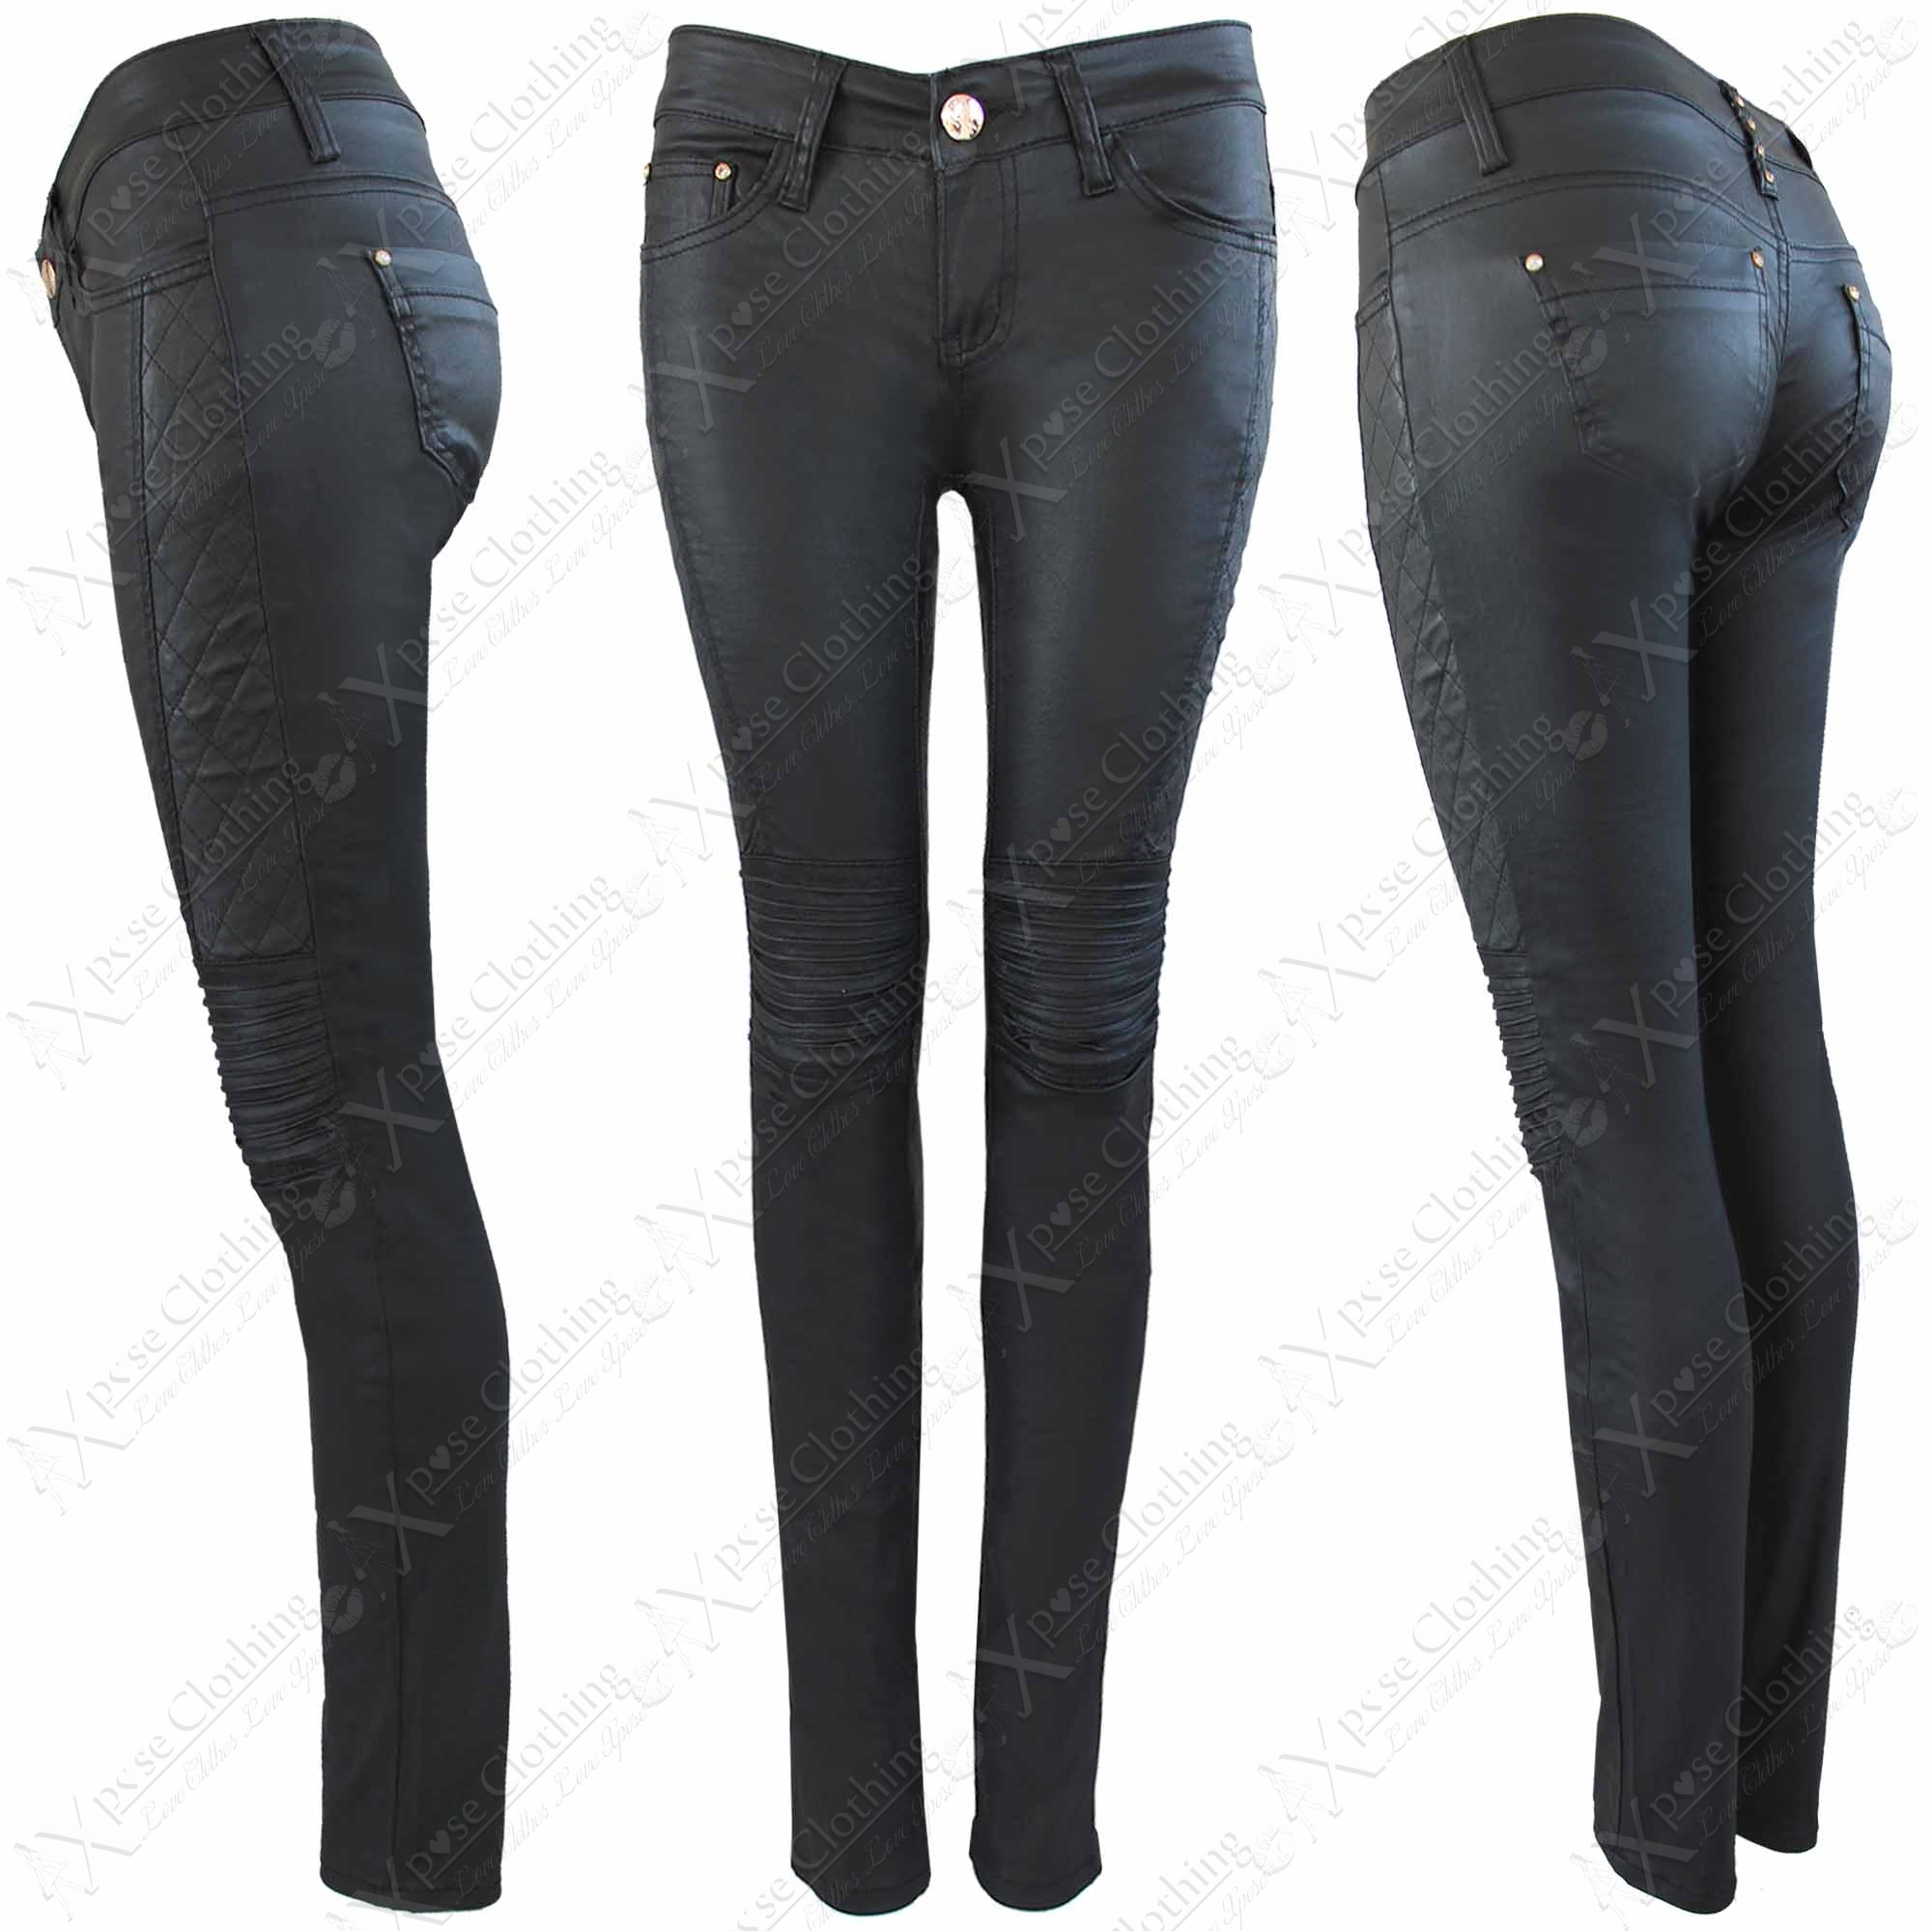 NEW LADIES BLACK PU BIKER JEANS LEATHER QUILTED LOOK SKINNY